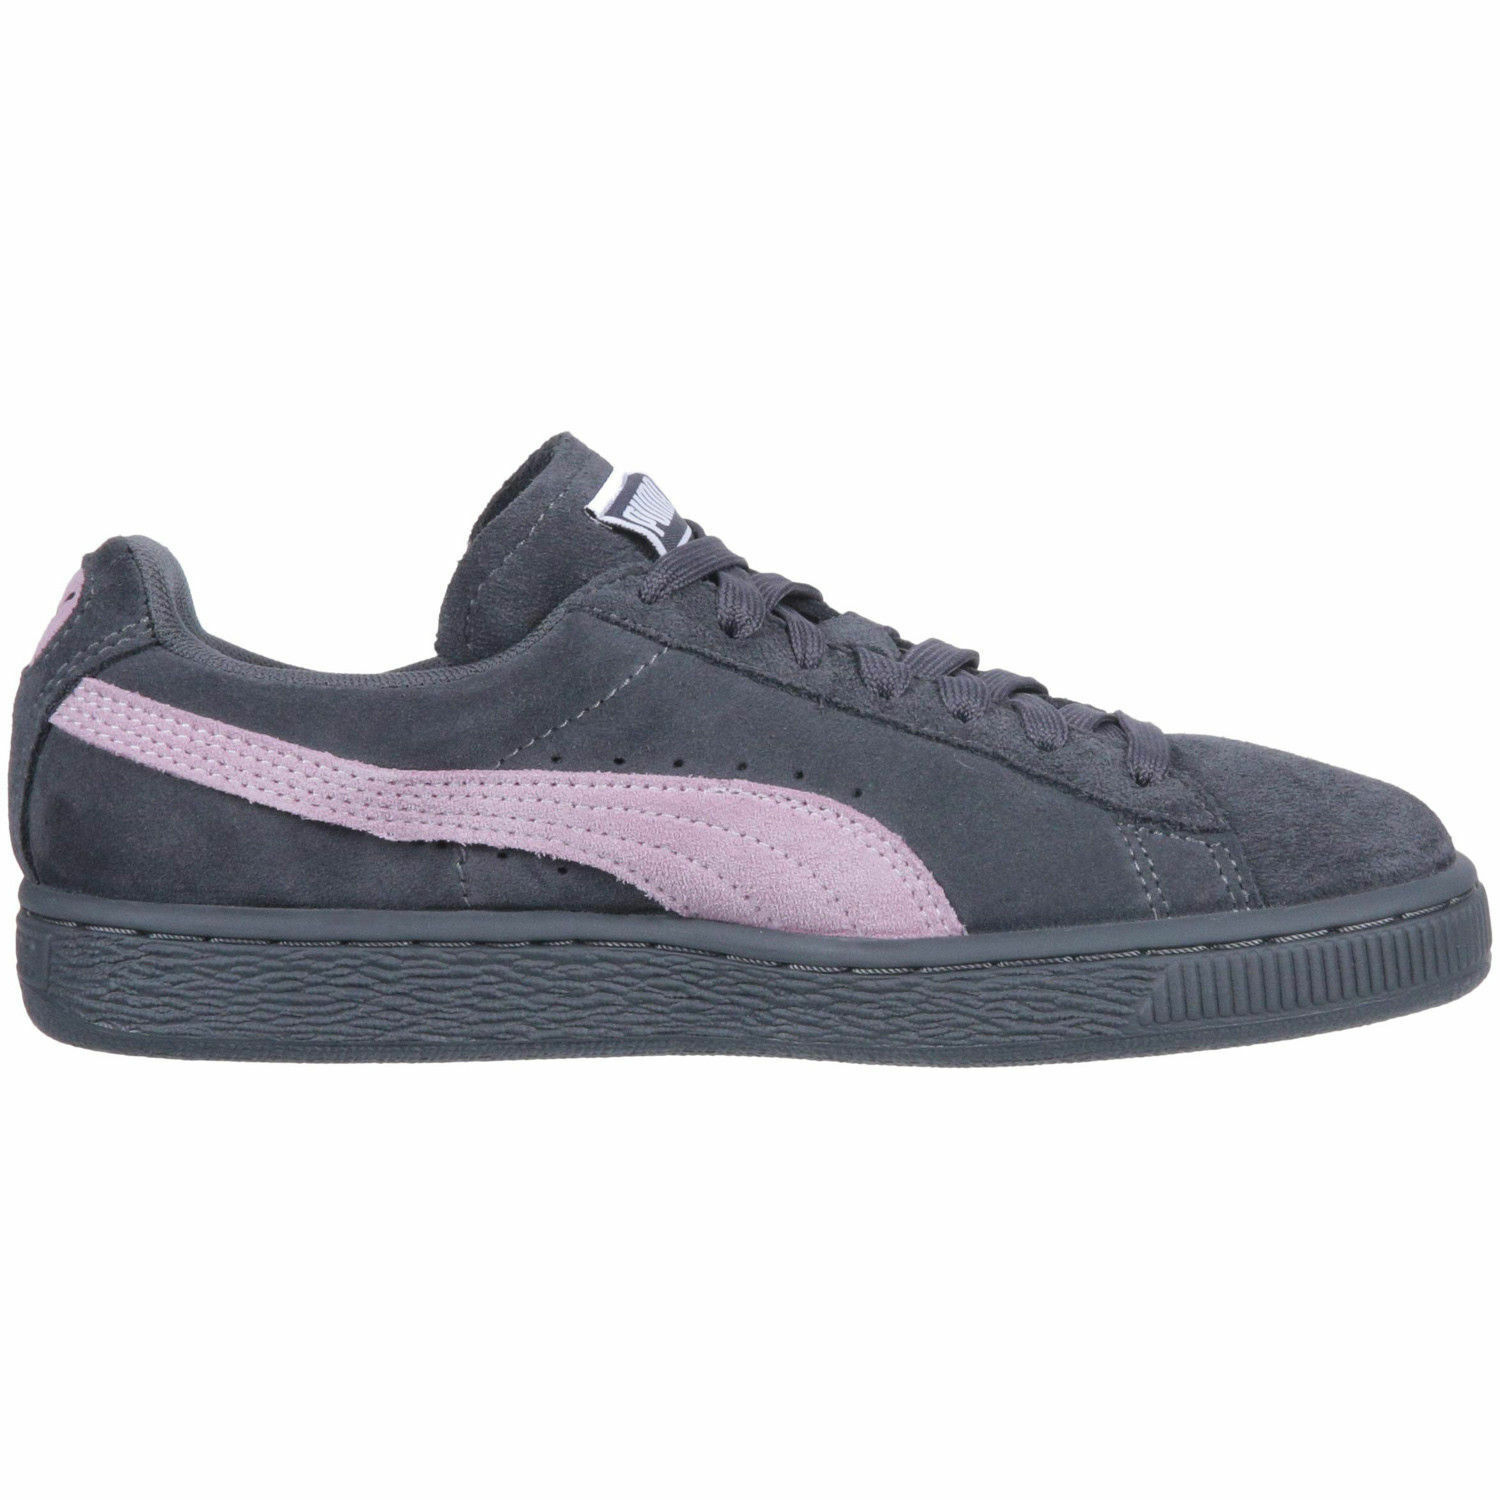 WOMEN'S Iron PUMA SUEDE CLASSIC  POM 355462-77  Iron WOMEN'S Gate / Winsome Orchid 66f5a4